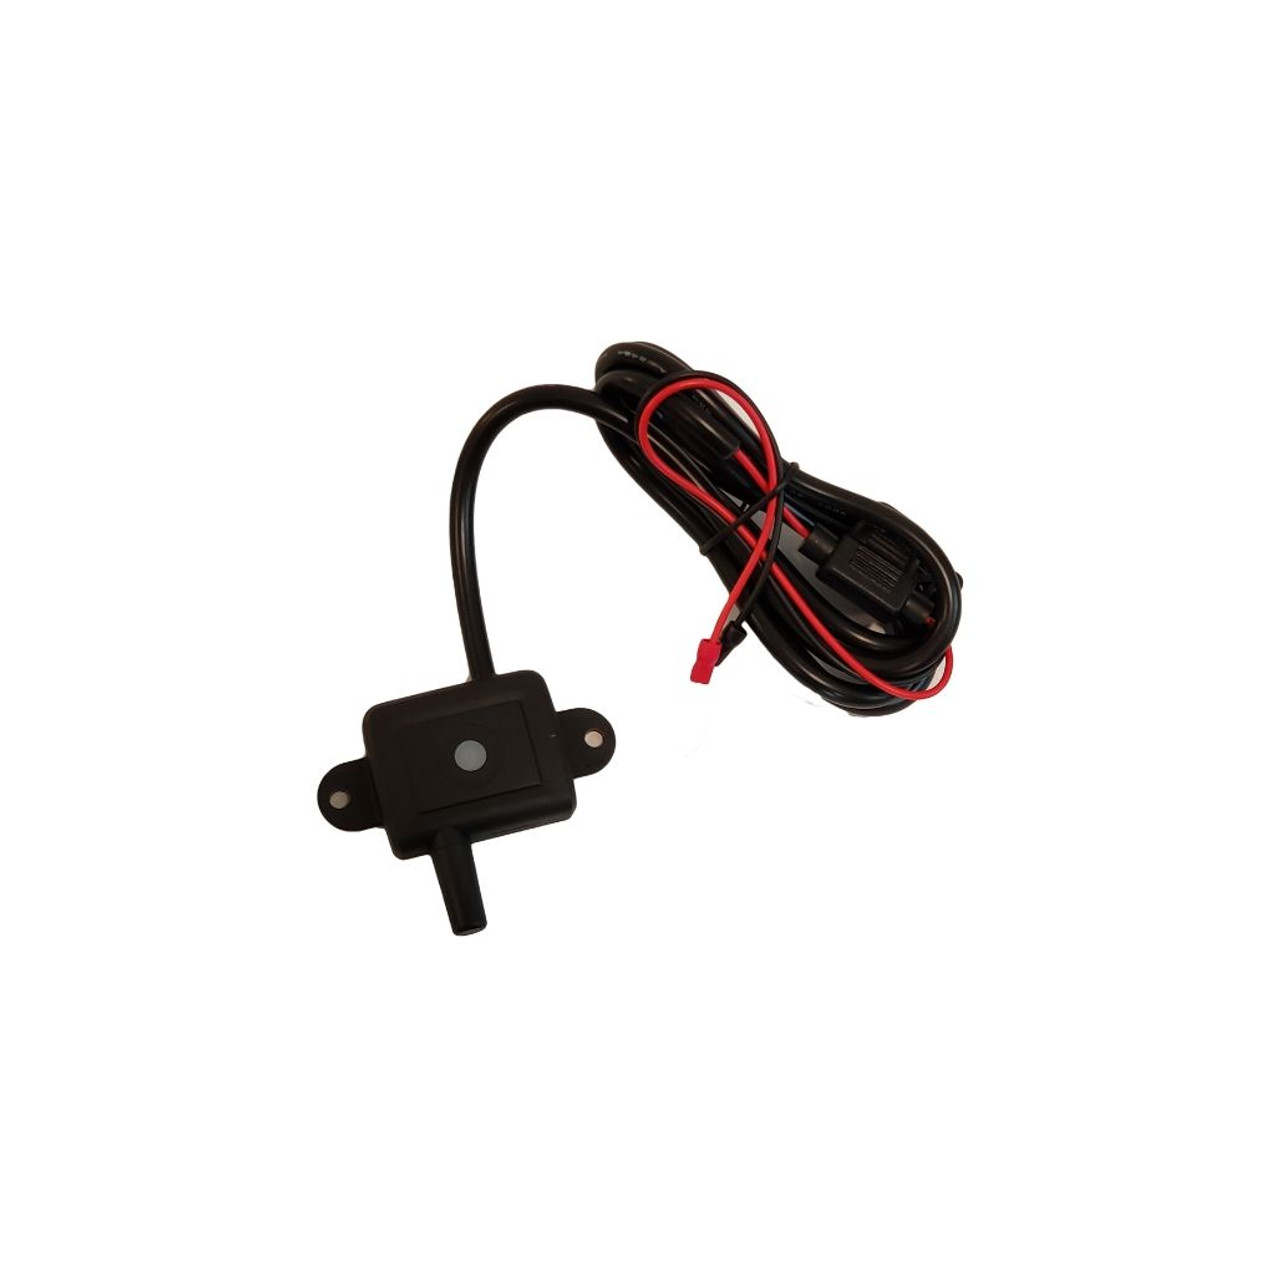 TST 507 TPMS with CAP Sensors (08) and Repeater